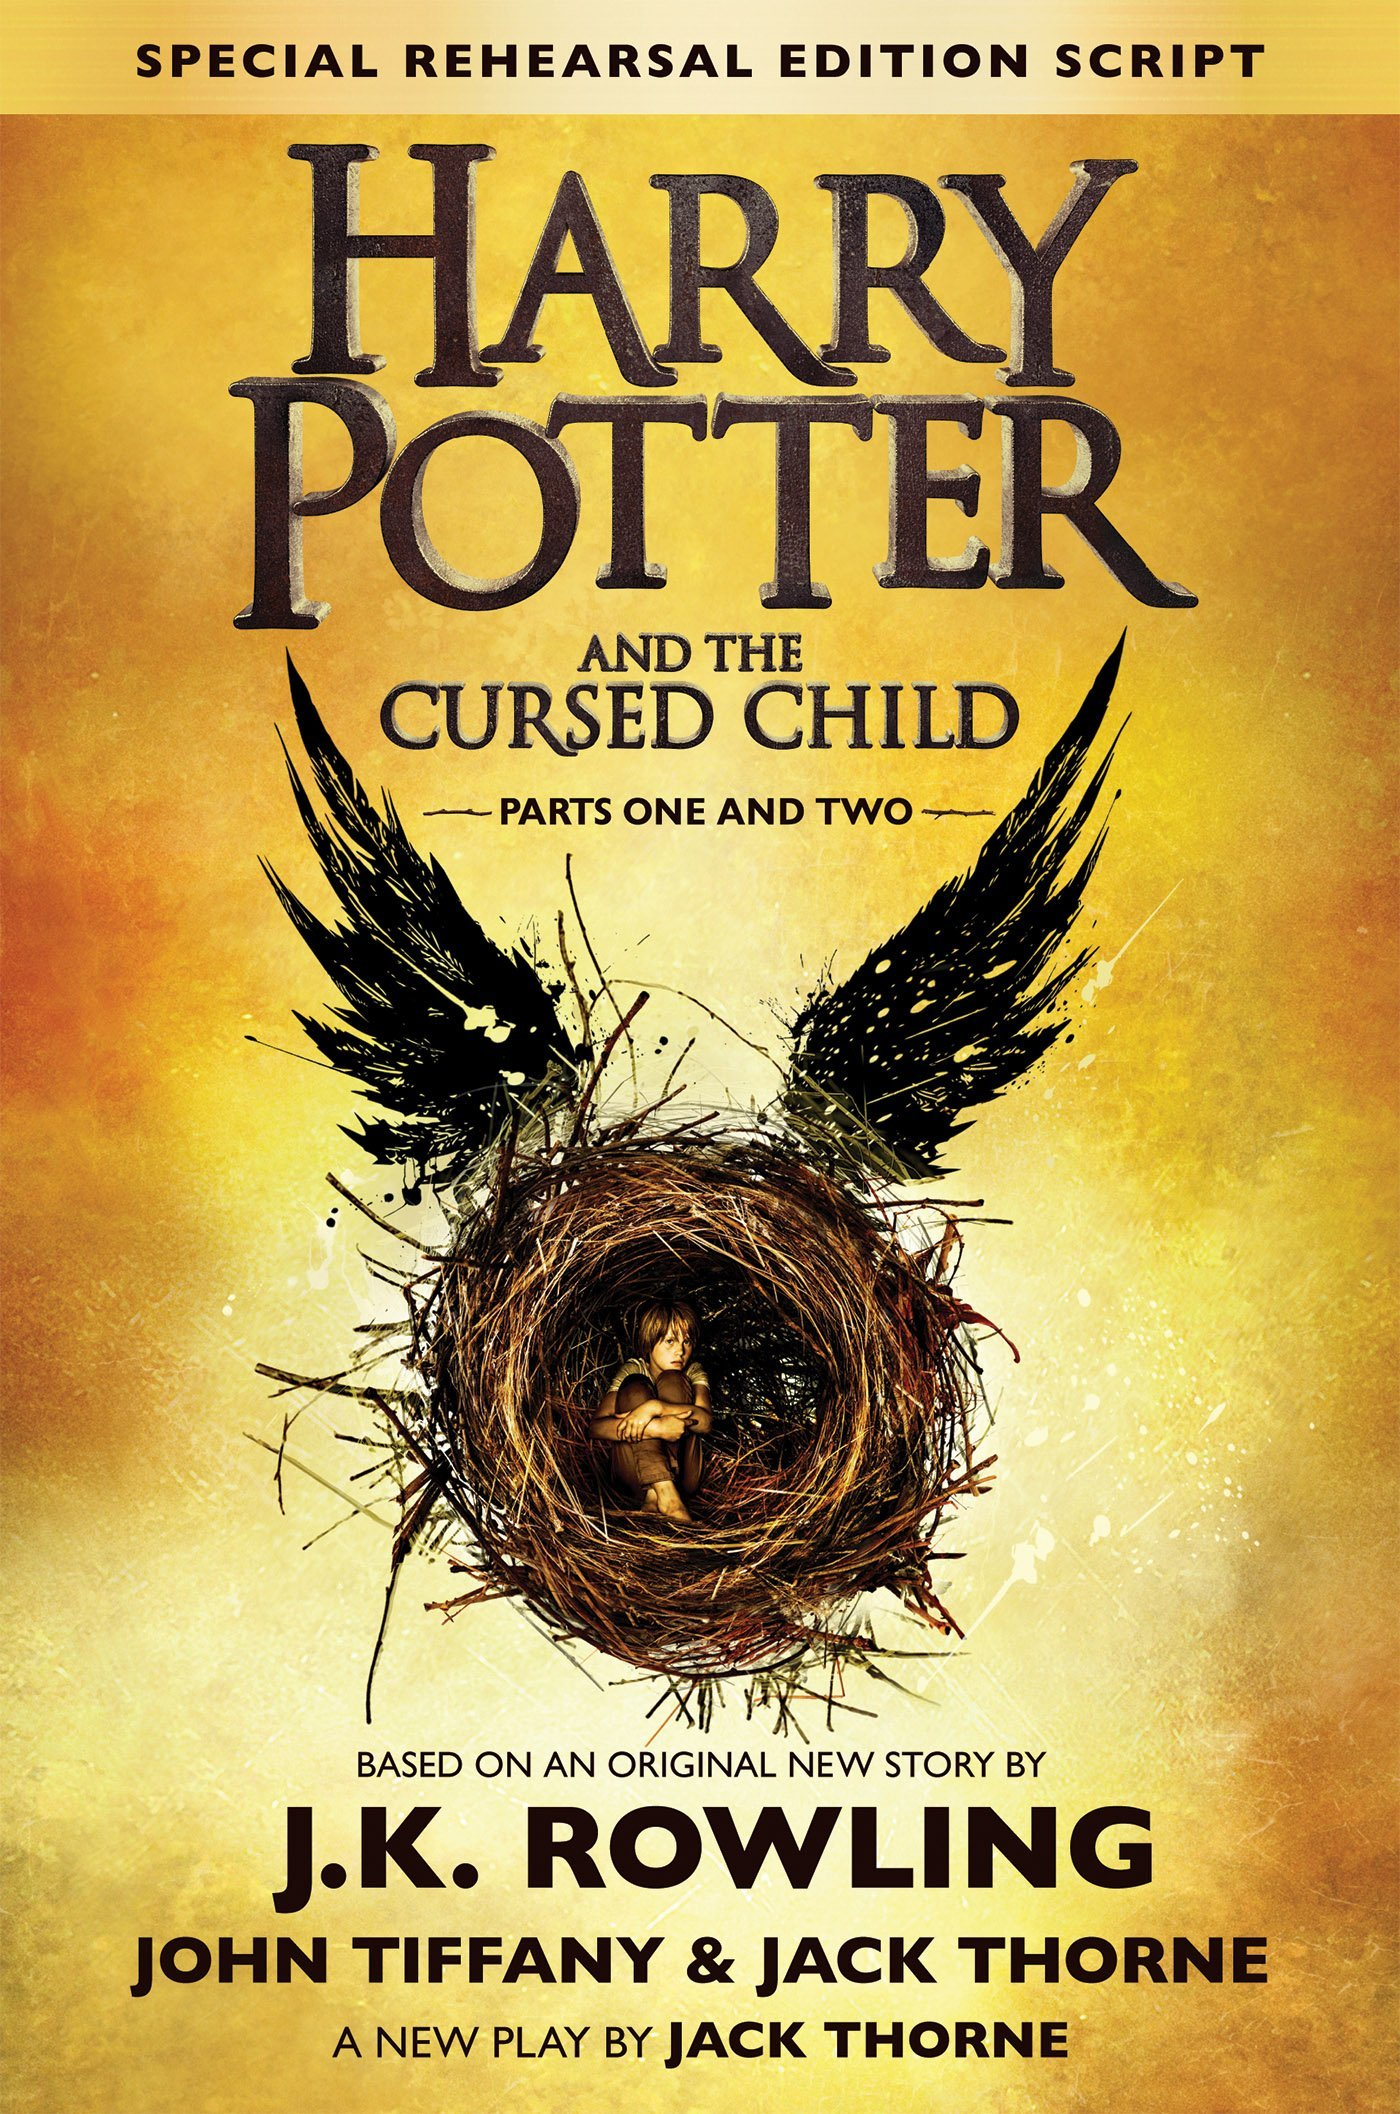 Harry_Potter_and_the_Cursed_Child_Special_Rehearsal_Edition_Book_Cover.jpg.html